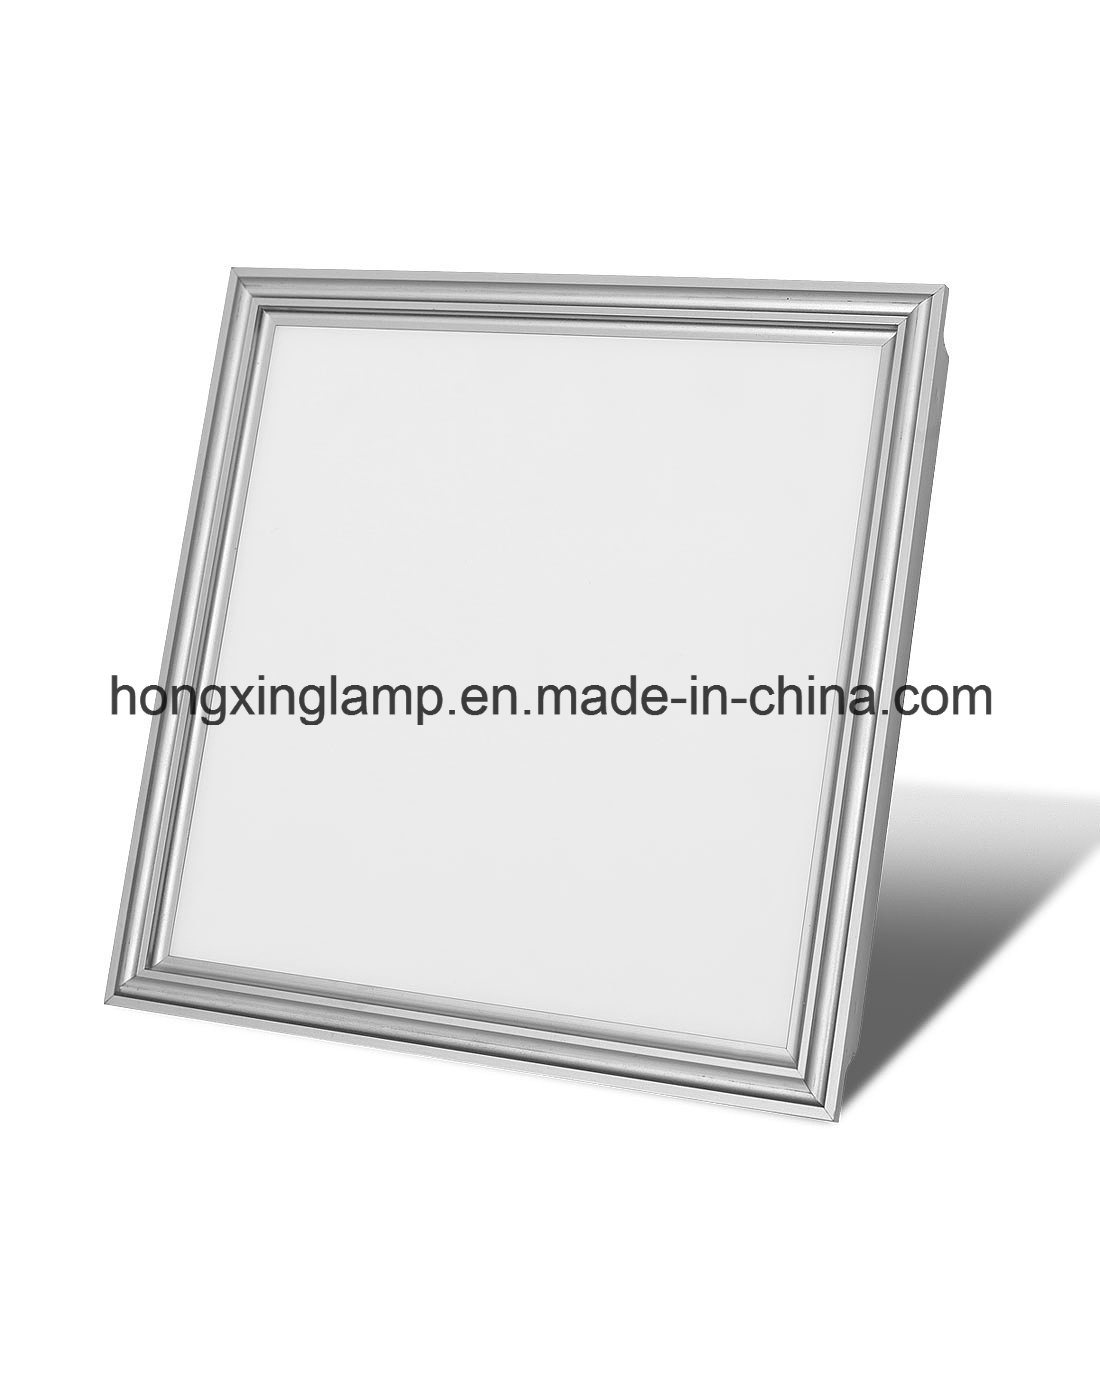 LED Panel Light 300*300mm SMD3014 18W Replacement Grille Lamp